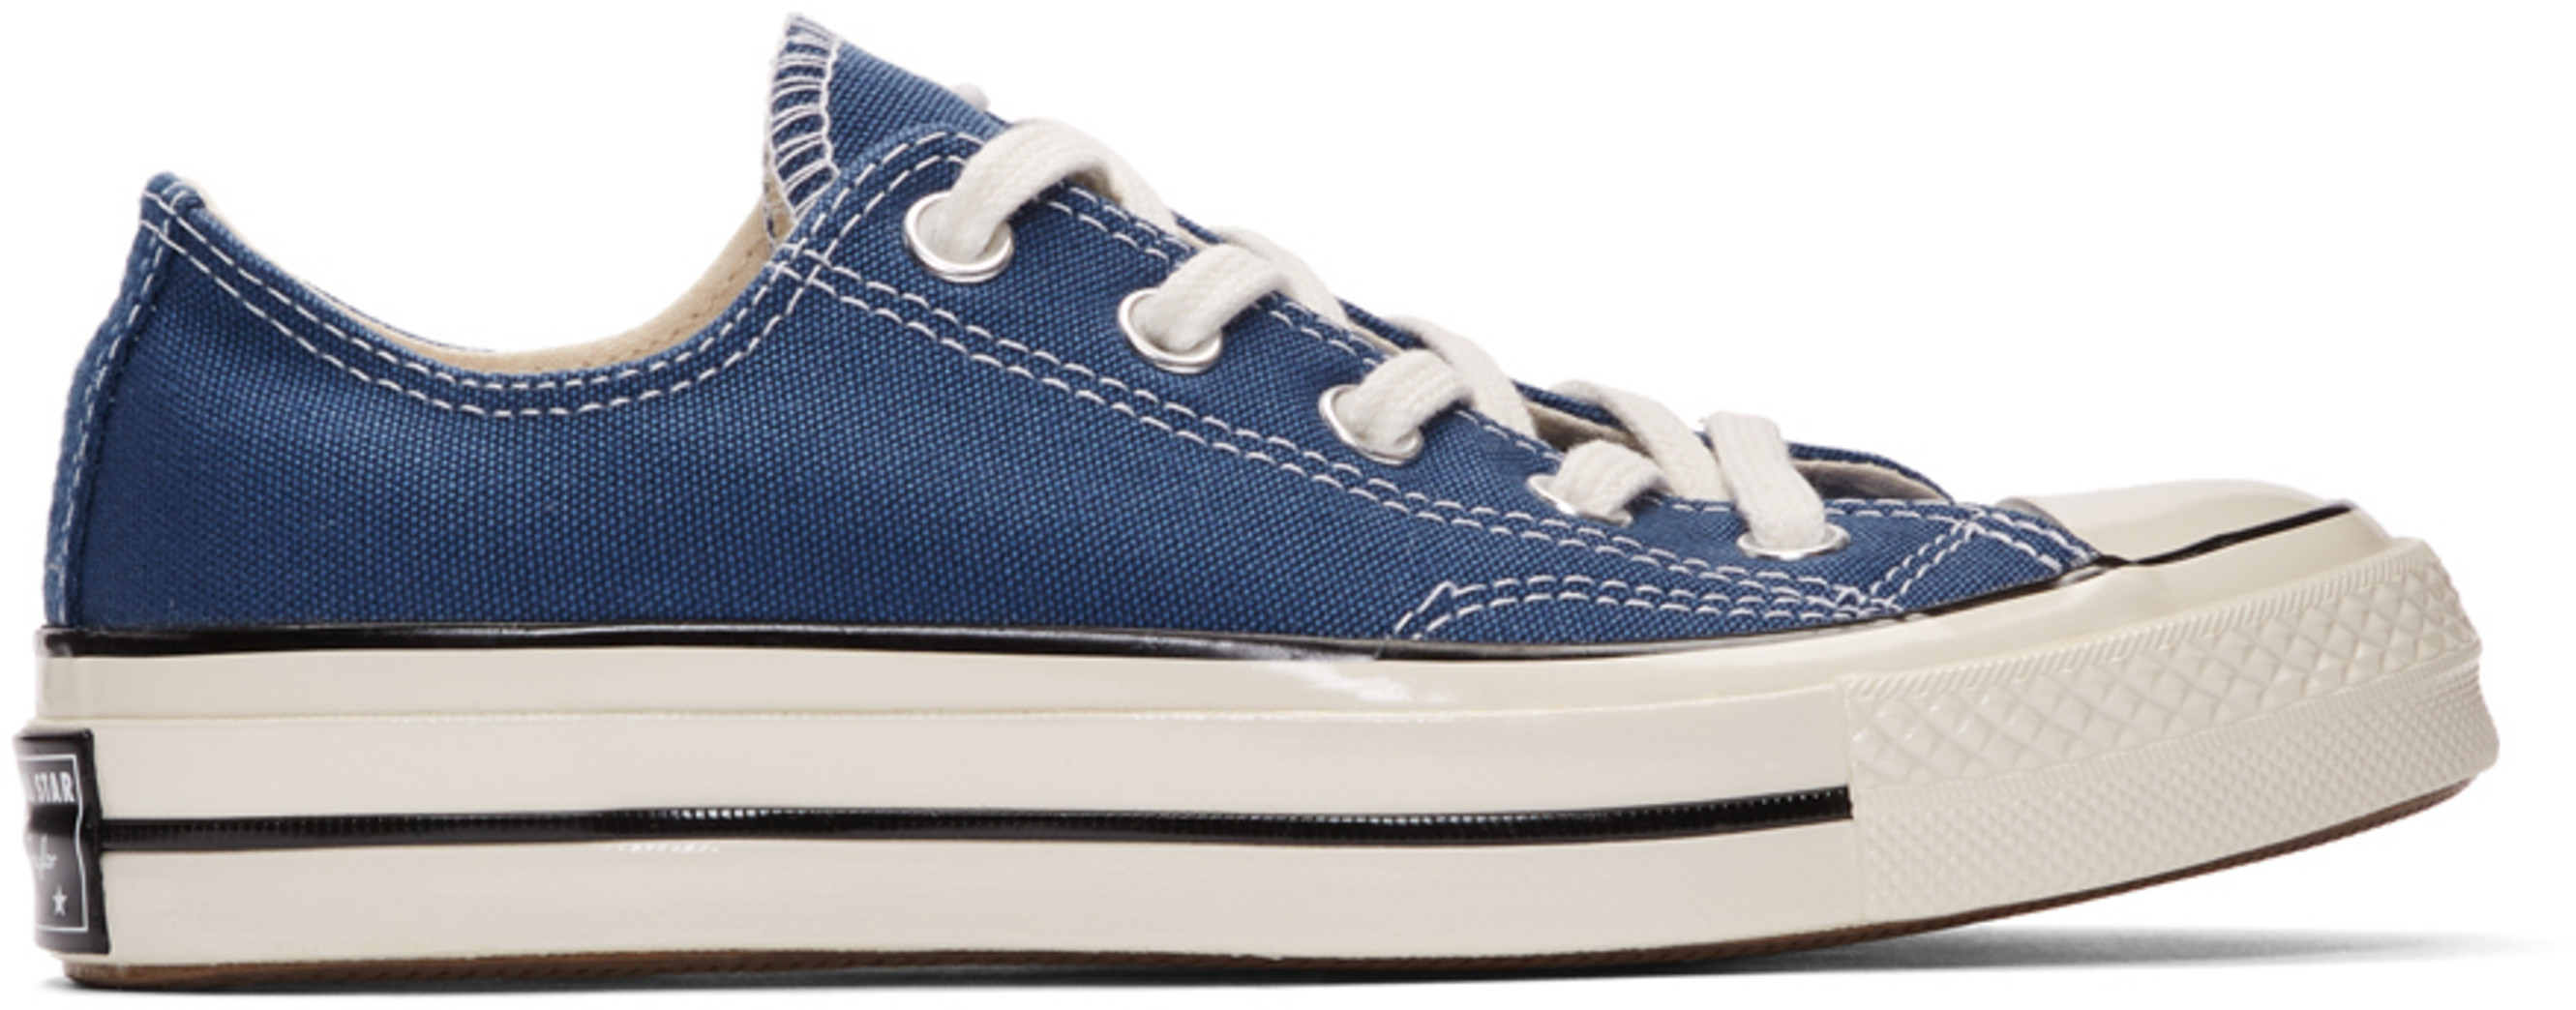 6c4d3d71e4f29 Converse for Women SS19 Collection